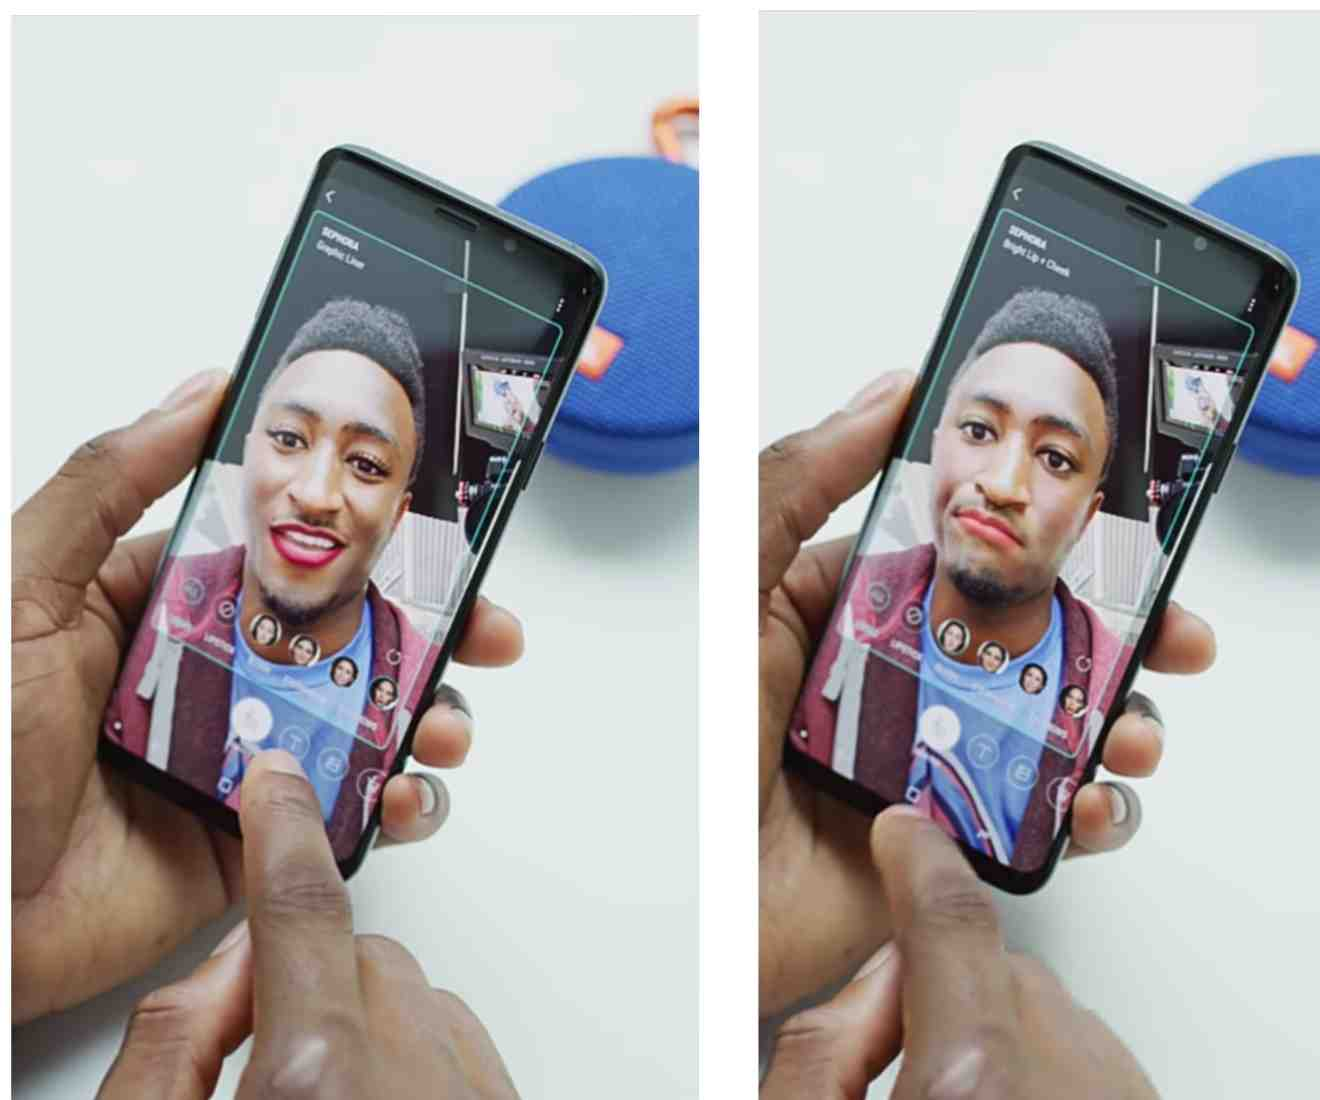 The Samsung Galaxy S9 and S9 Plus Bixby Makeup